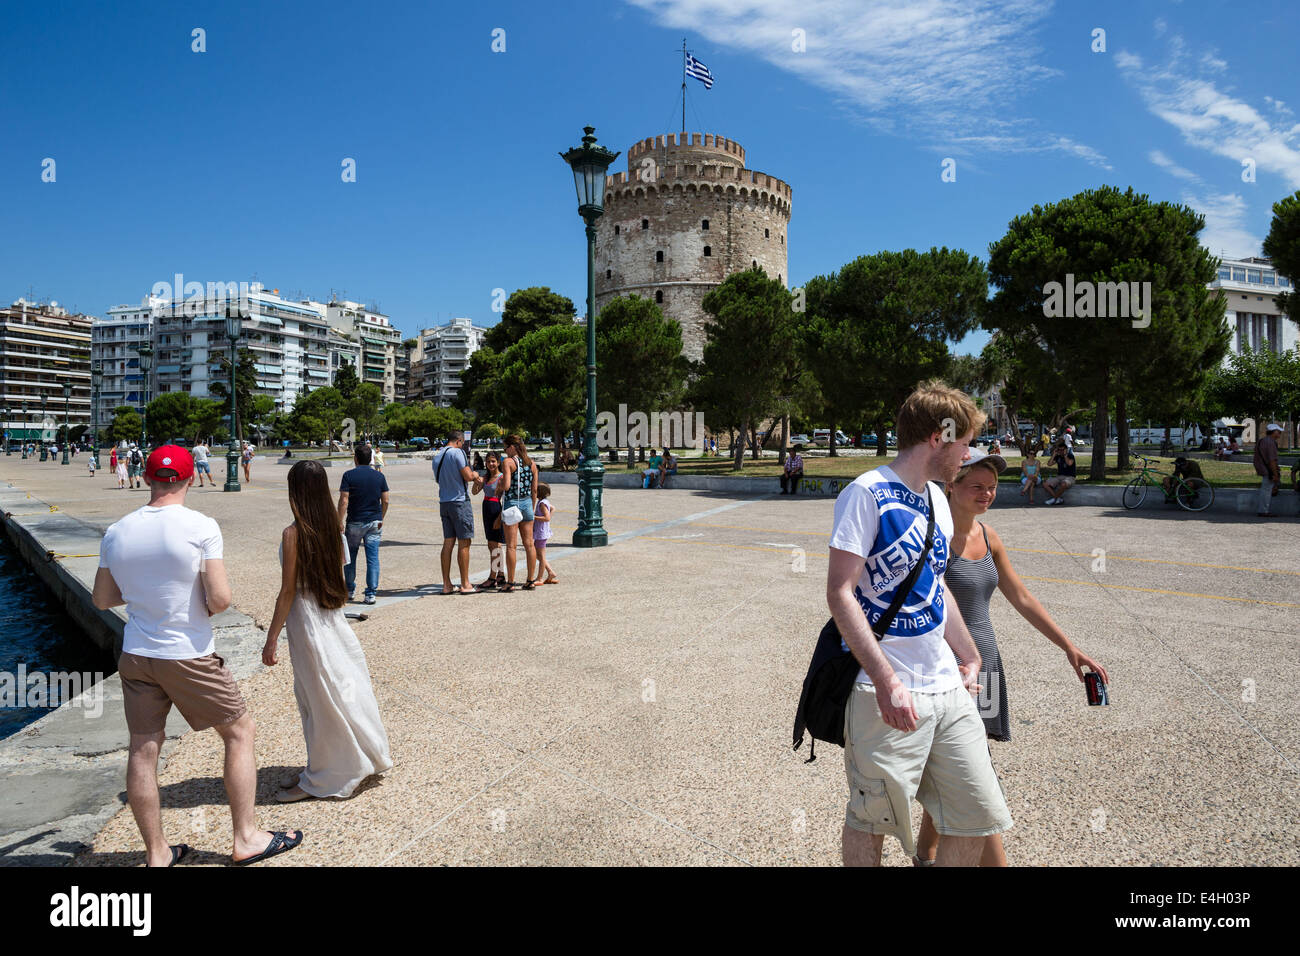 Thessaloniki, Greece. 11th July 2014. Tourists walk in front of city's landmark, the White Tower, on the seaside - Stock Image